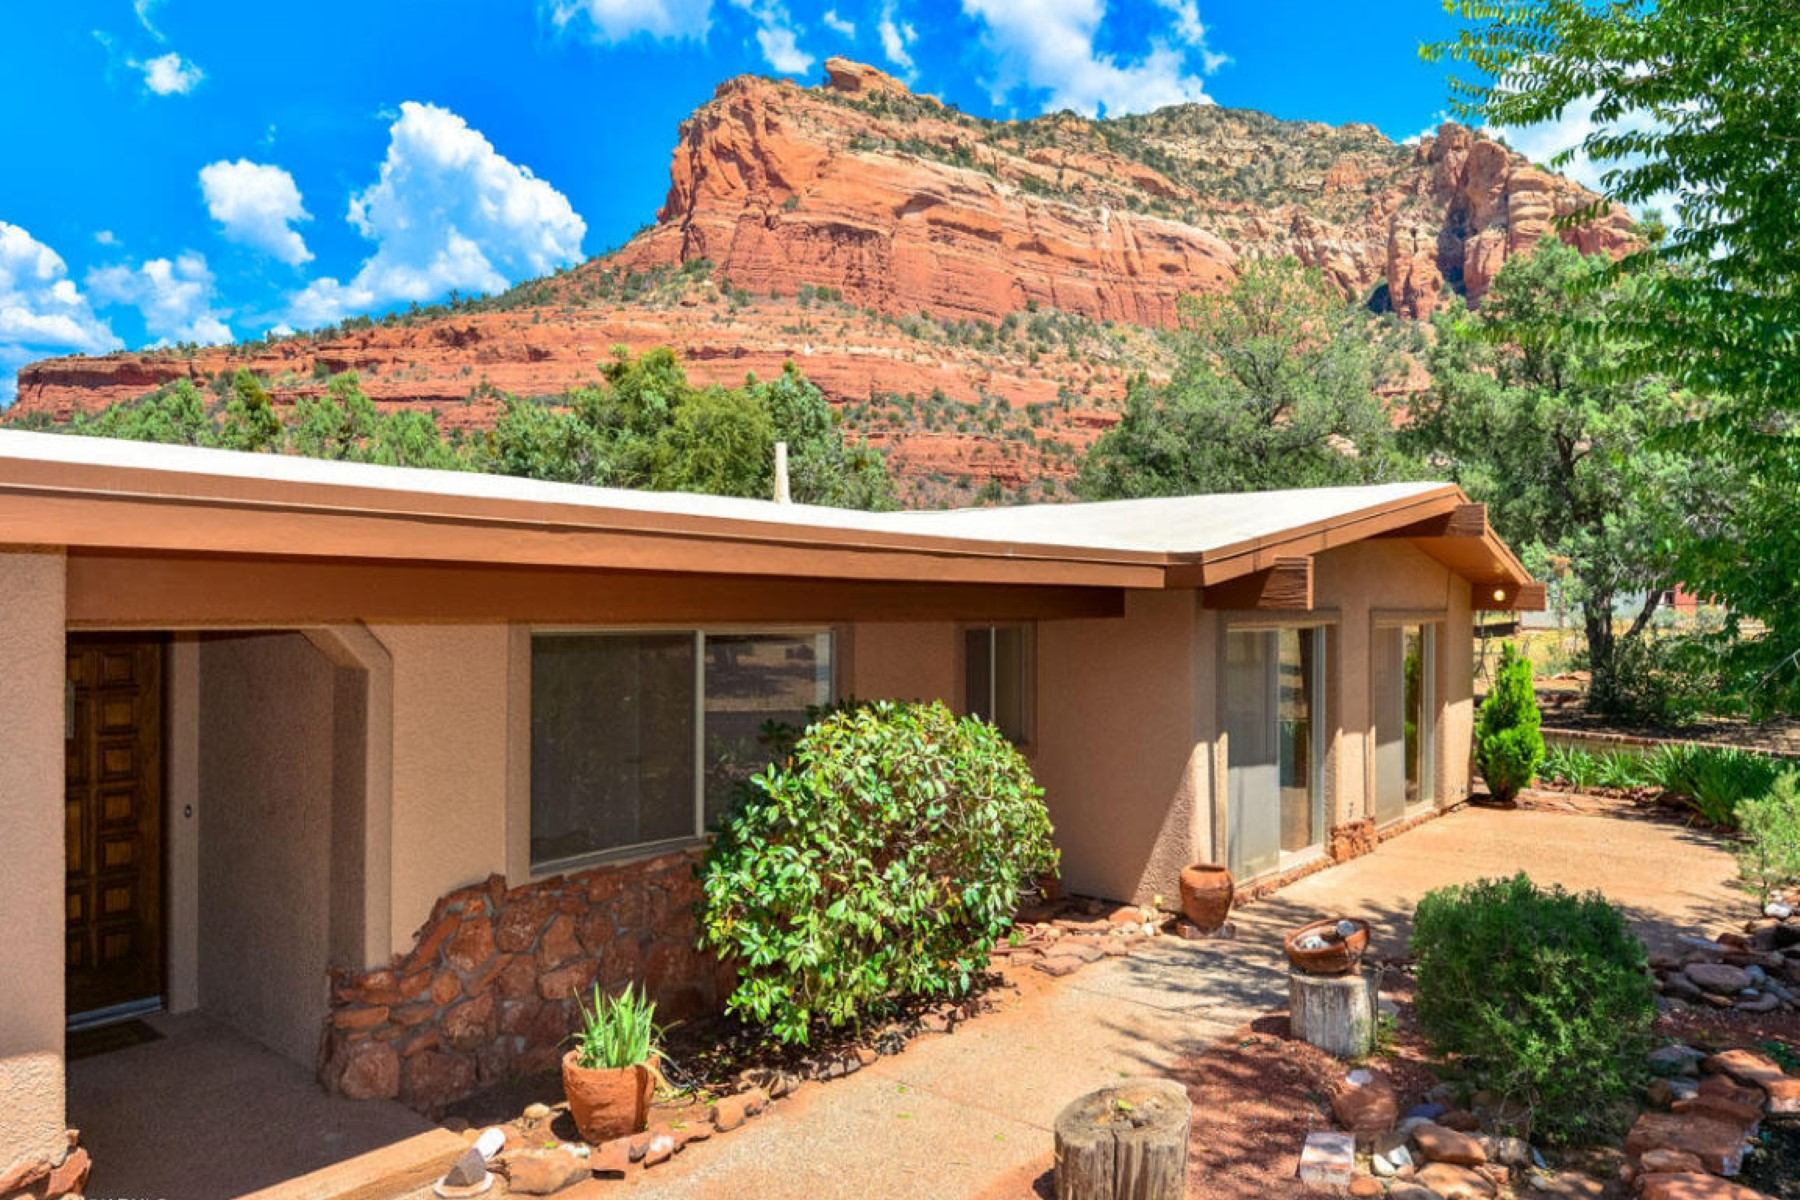 獨棟家庭住宅 為 出售 在 Rare original western home in the heart of Sedona. 1400 Dry Creek Rd Sedona, 亞利桑那州 86336 美國